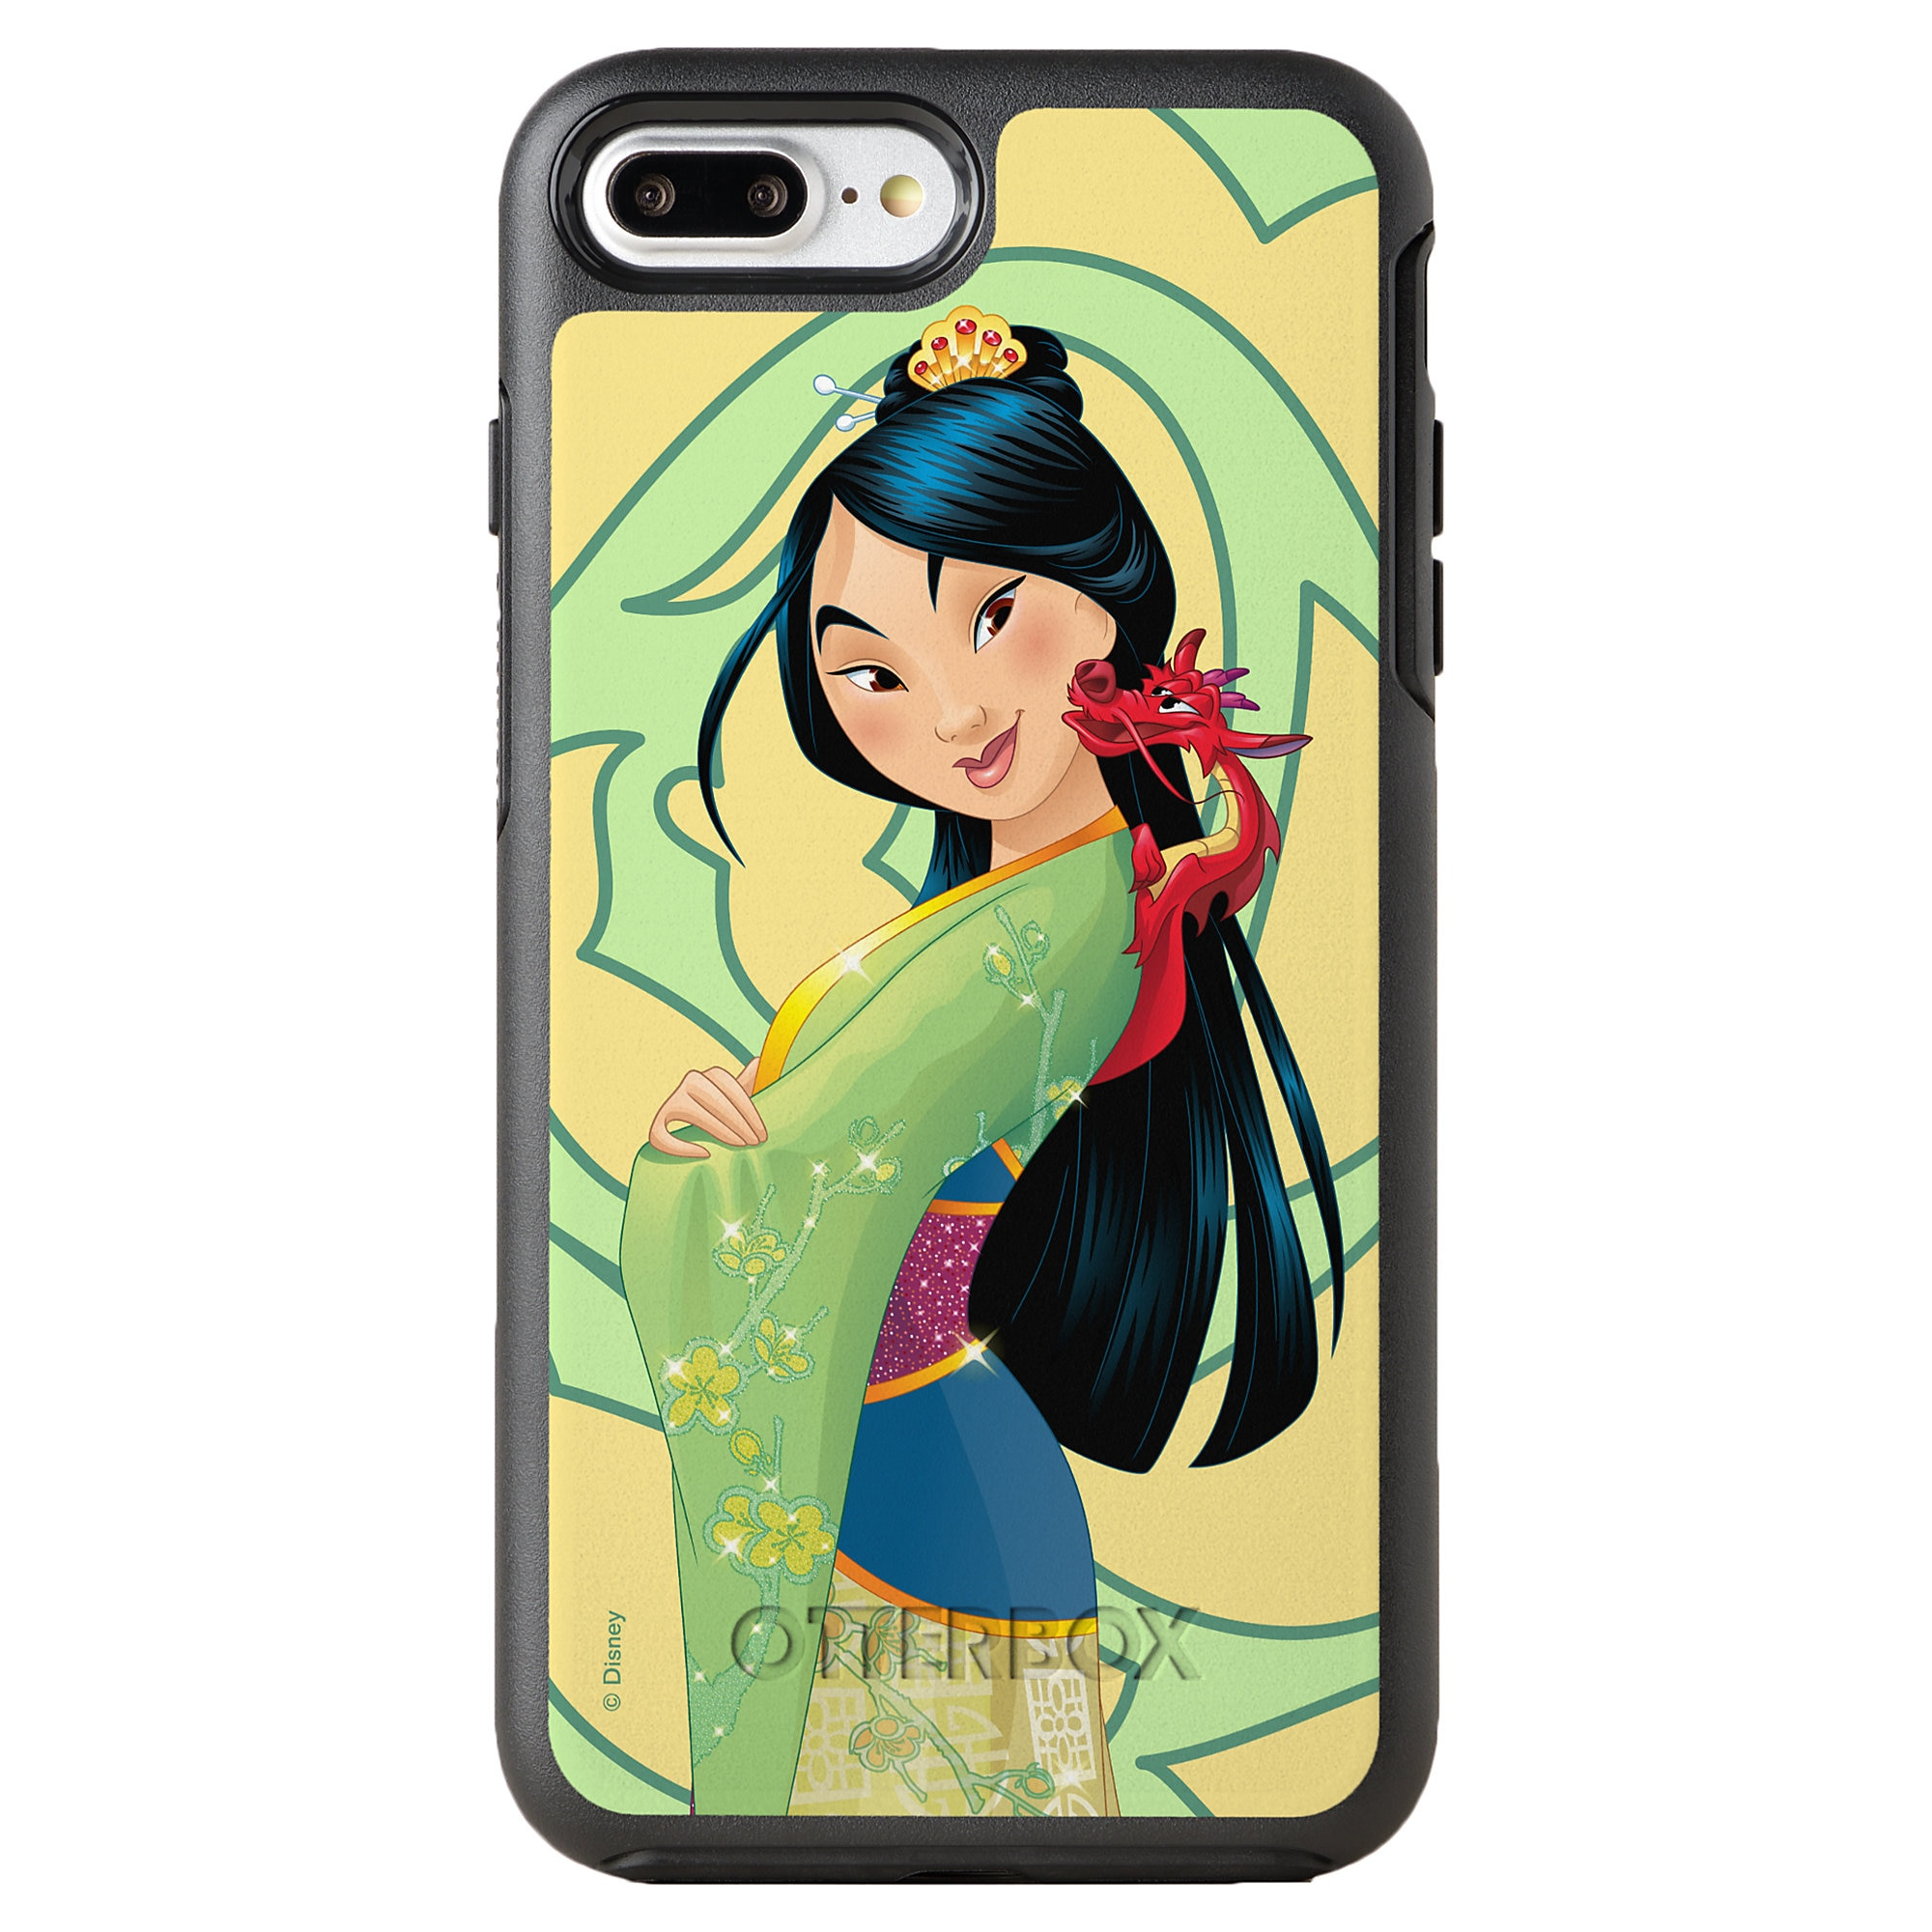 Mulan and Mushu iPhone 8 Plus/7 Plus Case - Customizable